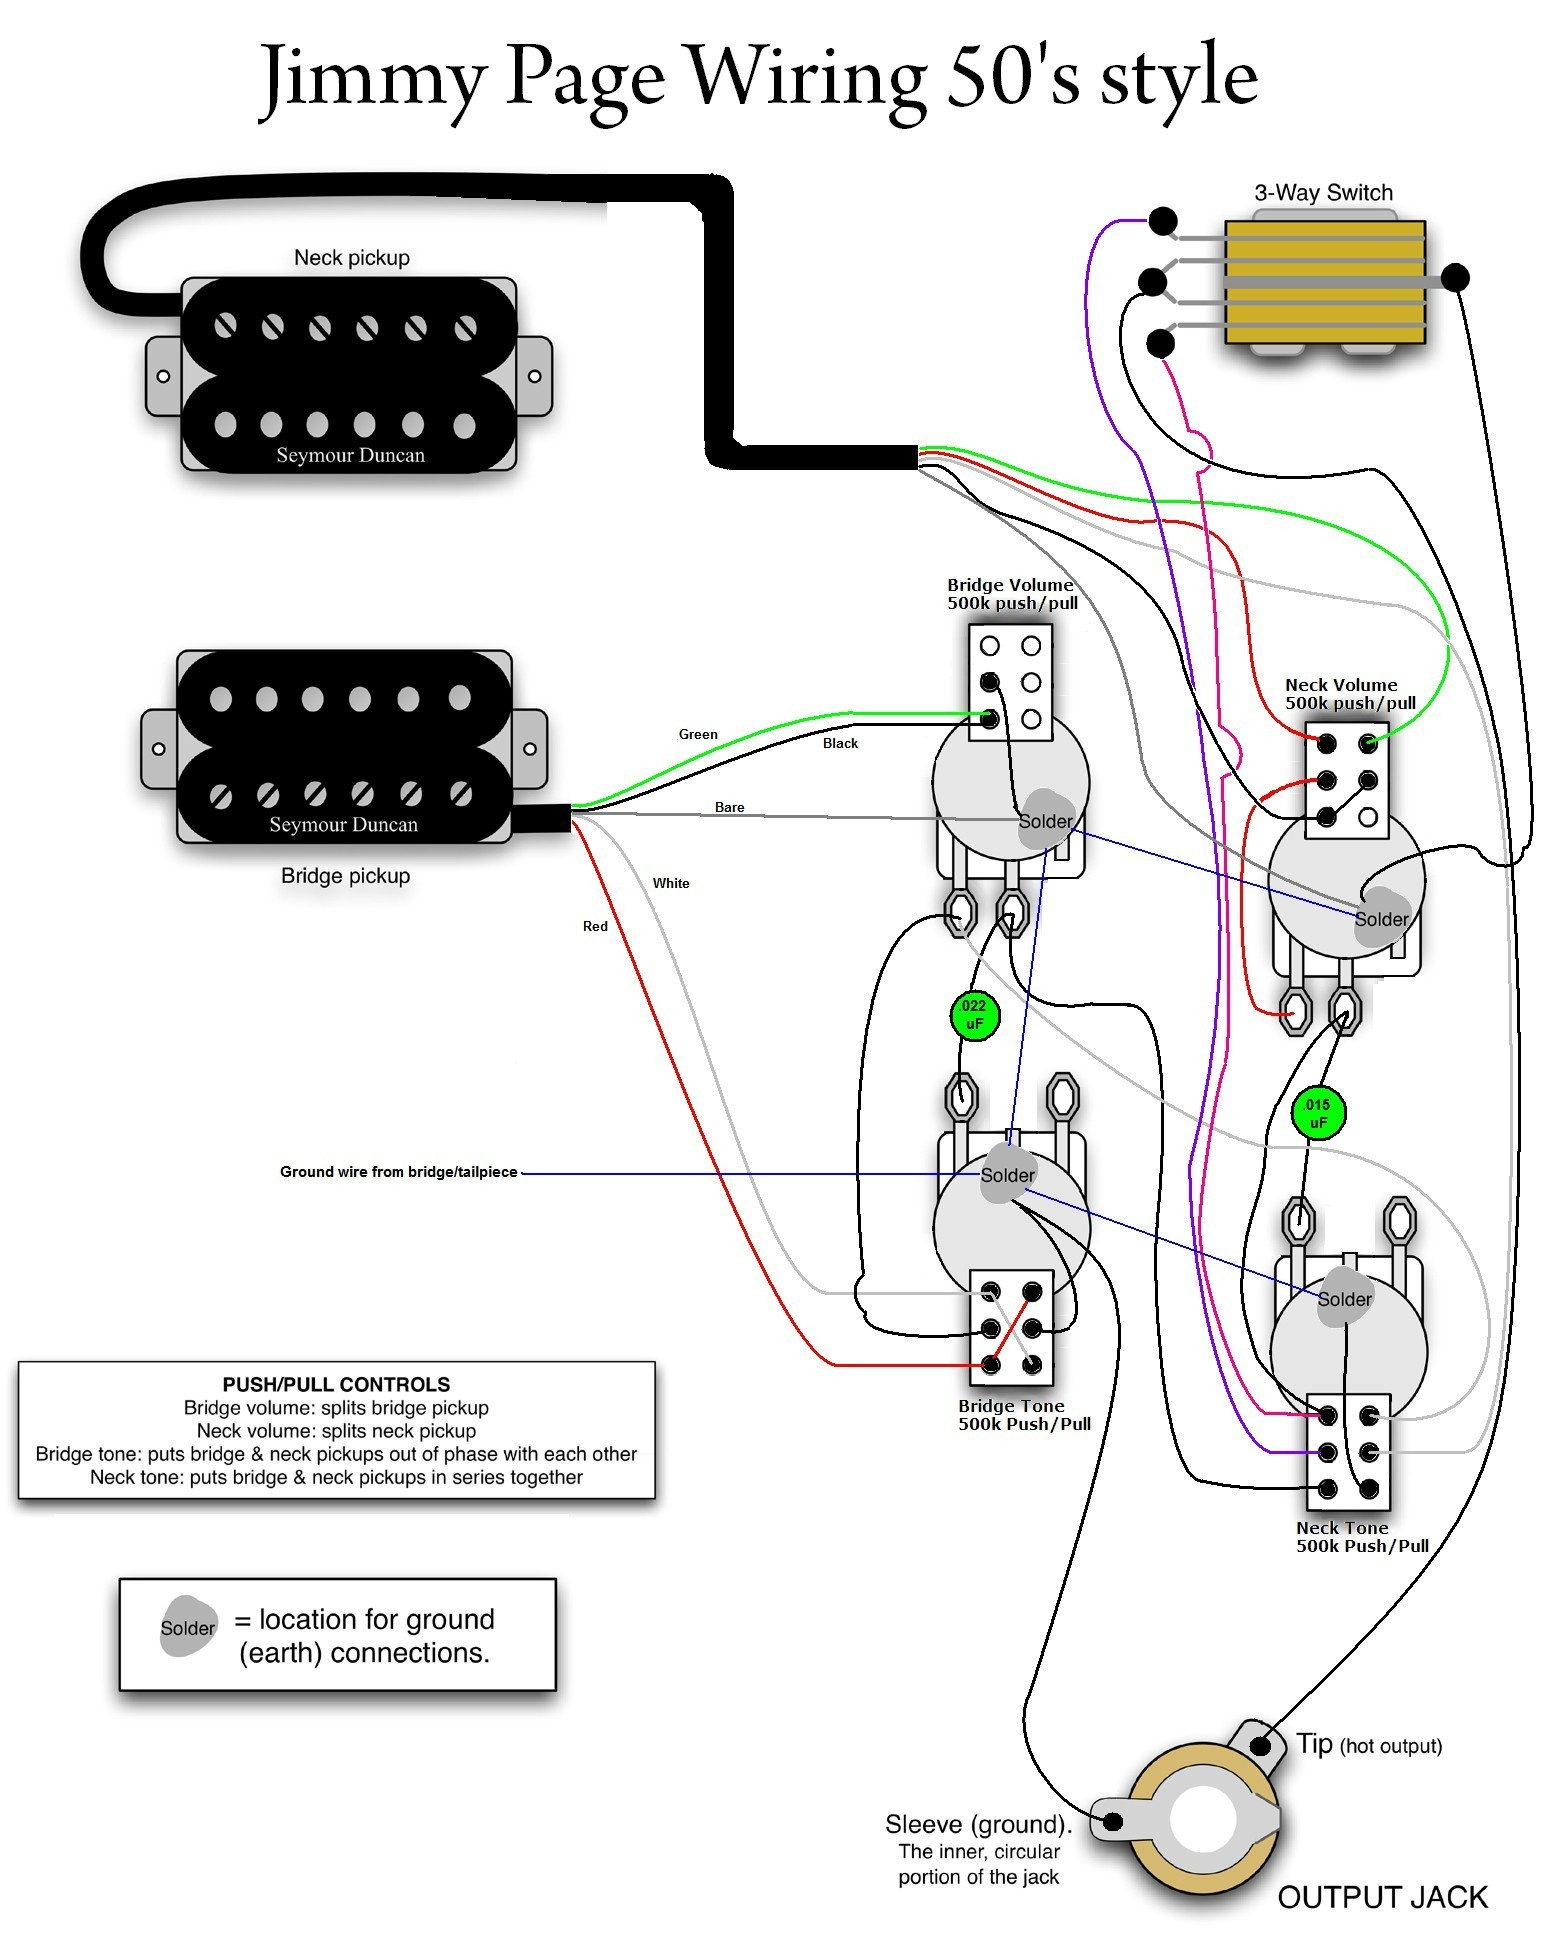 les paul standard wiring diagram Collection-Best Les Paul Wiring Diagram Save Les Paul Traditional Pro Wiring Diagram Best Gibson Les Paul 18-l